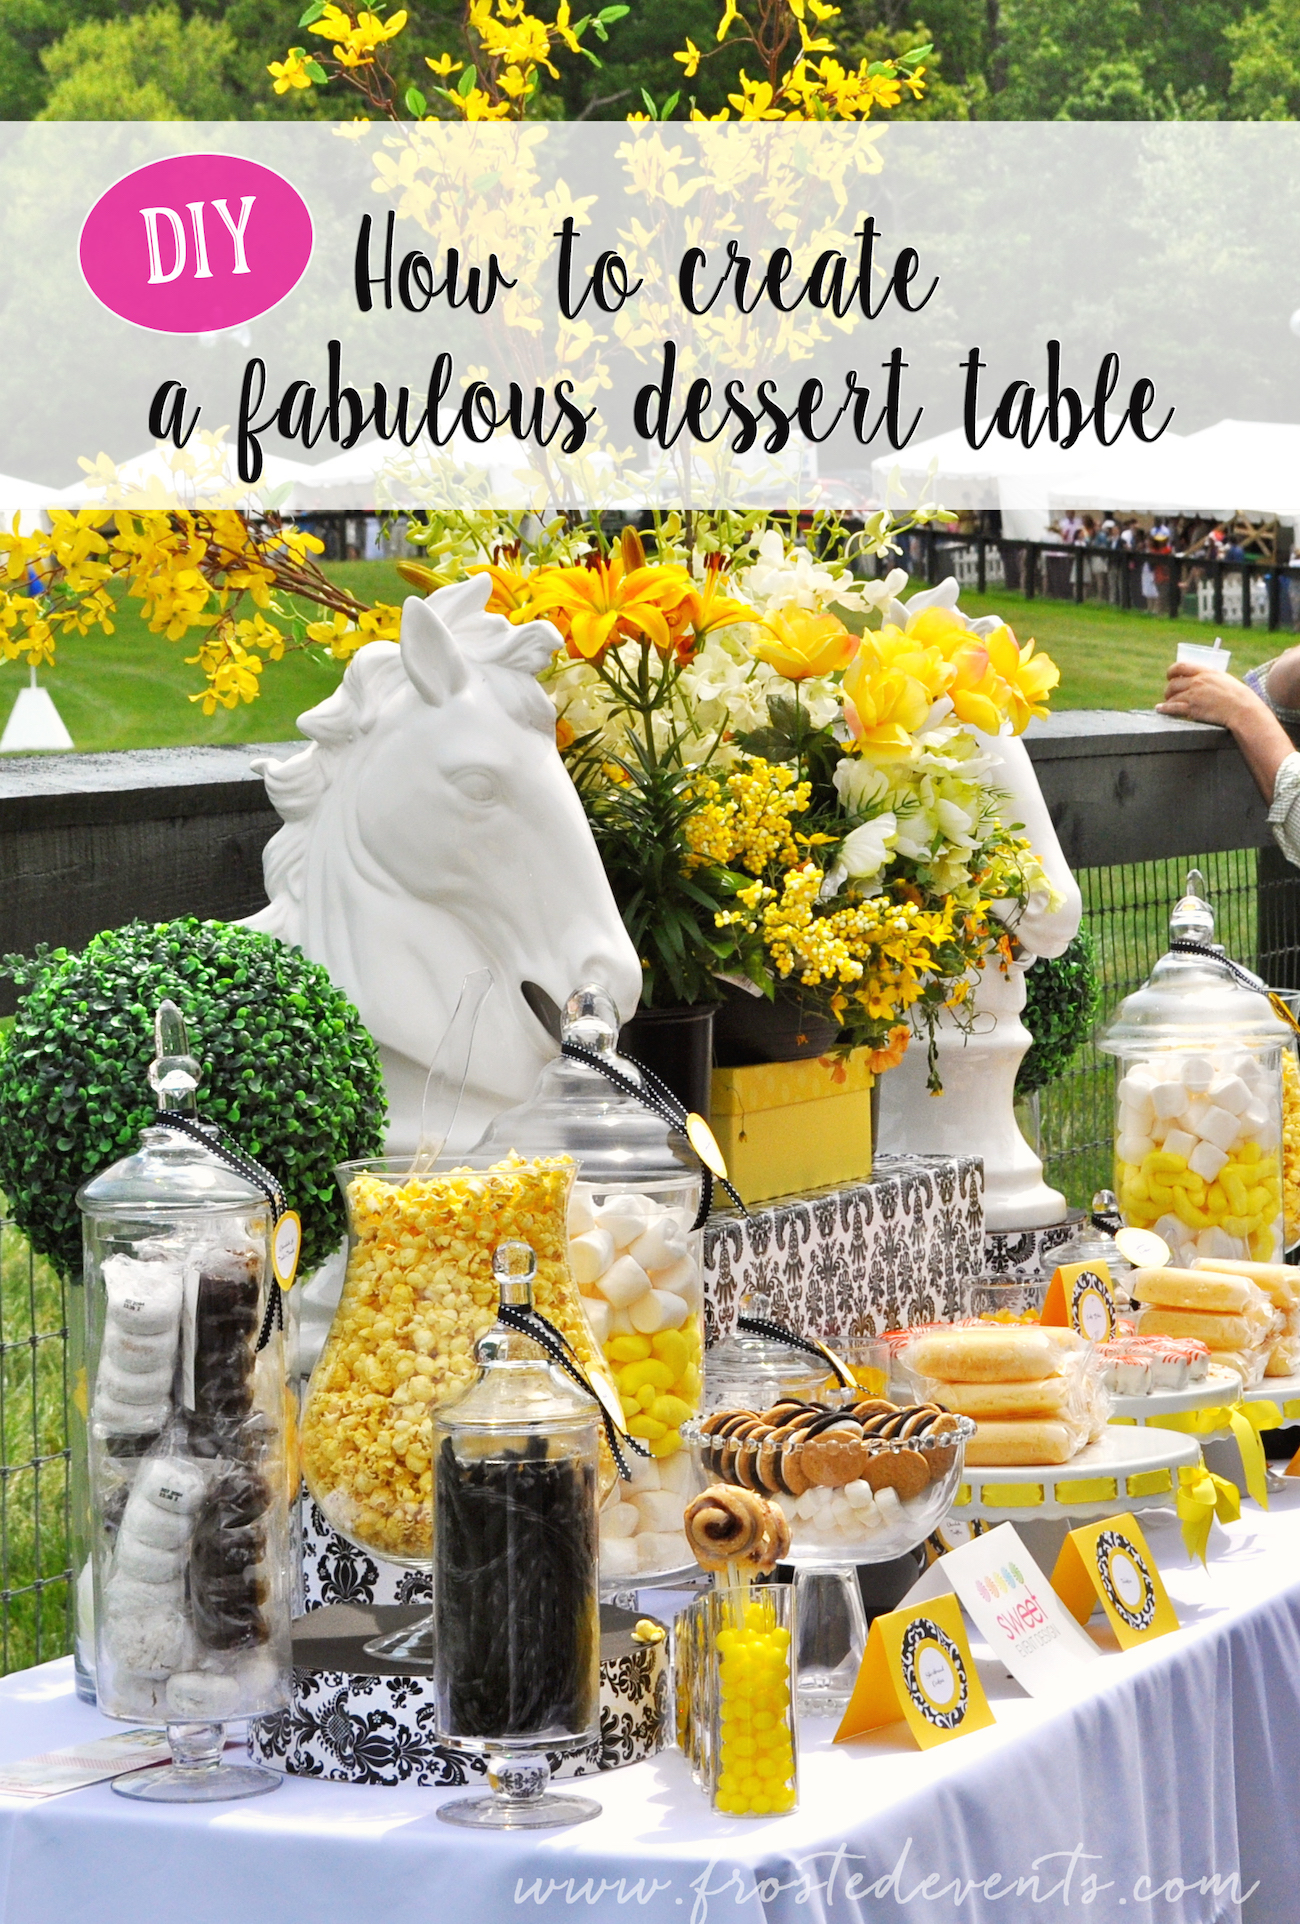 Dessert Table Candy Buffet Wedding Ideas Inspiration Horse Derby Theme frostedevents #desserttable #candybuffet #wedding